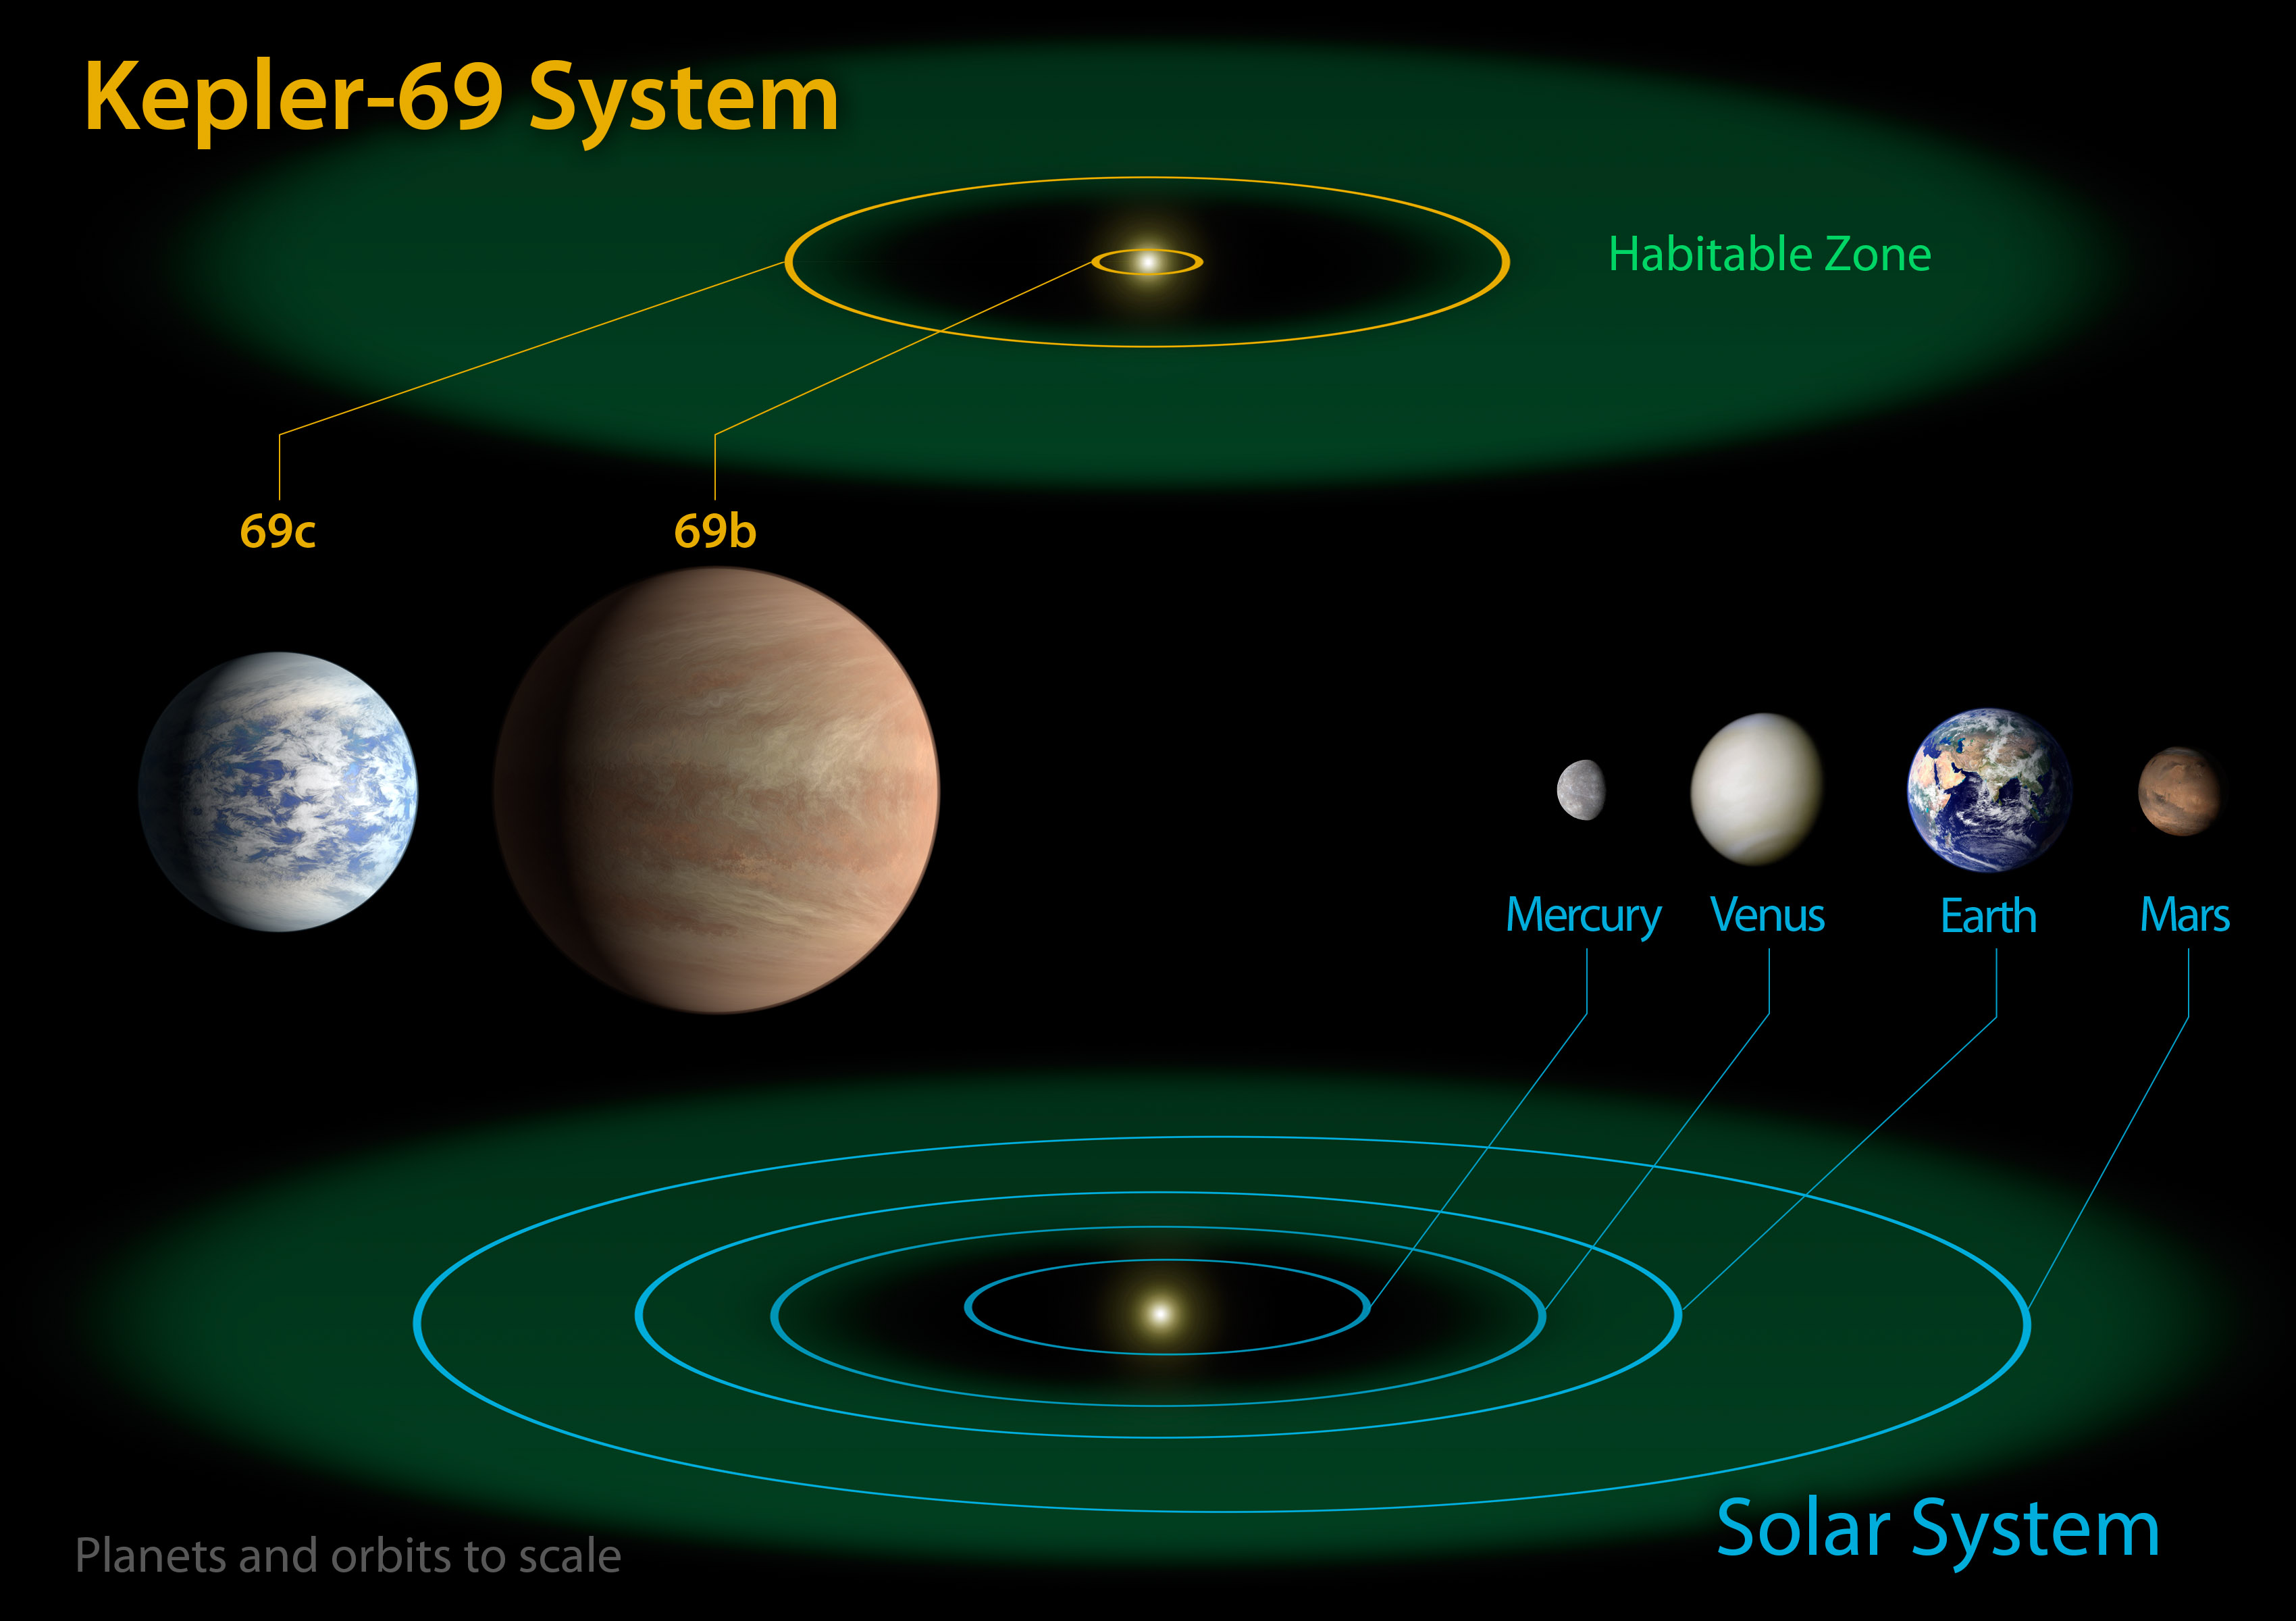 Kepler-69 and the Solar System | NASA